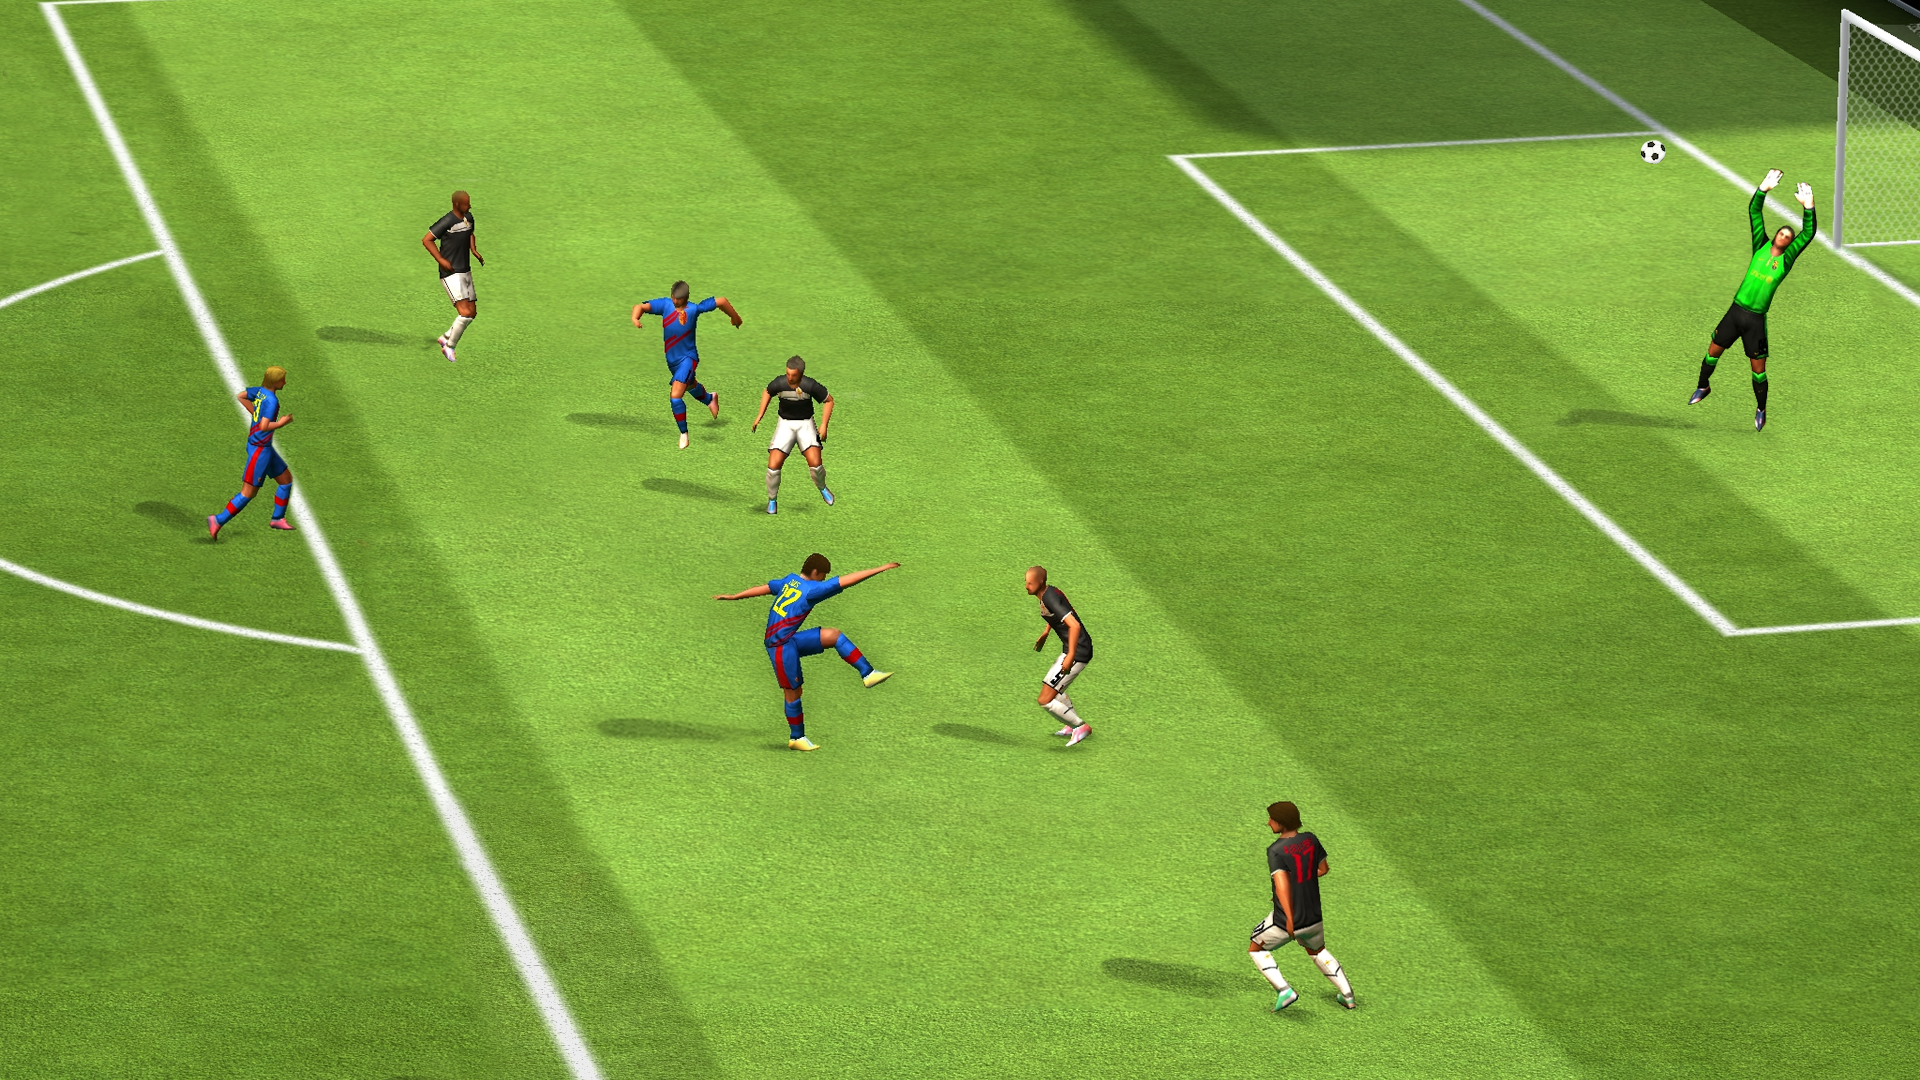 Real Soccer 2013 screenshot #18